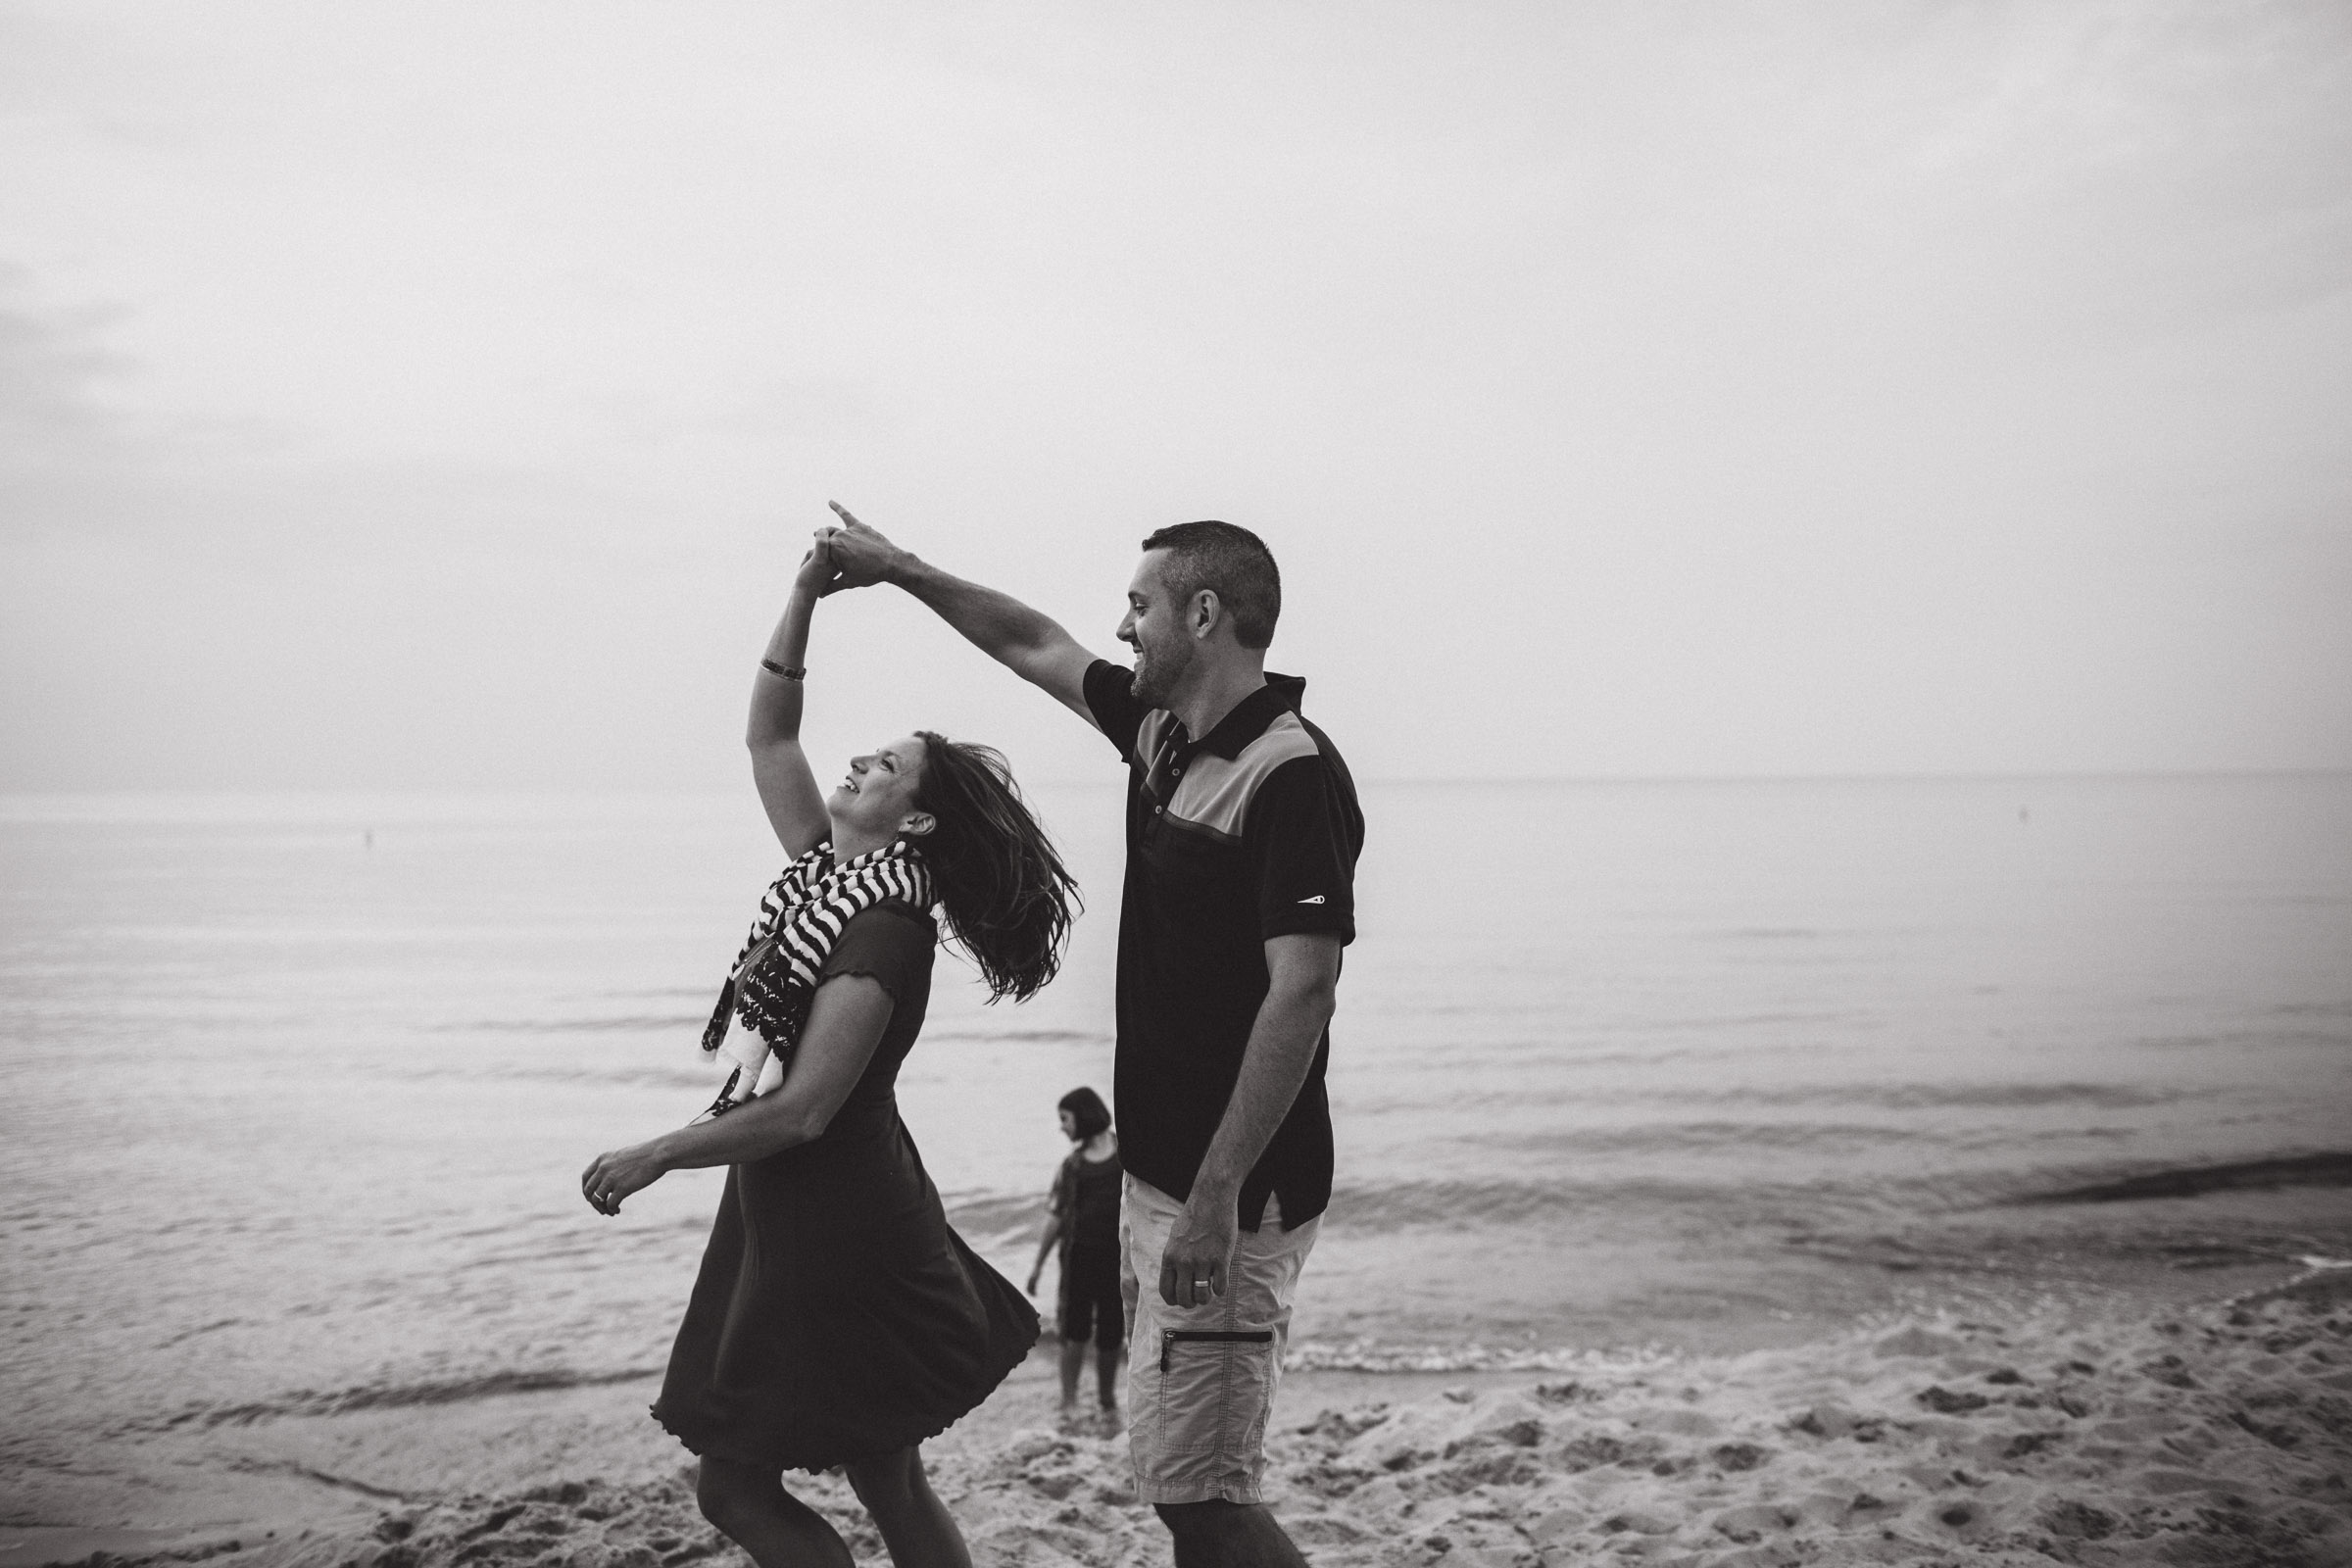 couple dancing on the beach, black and white